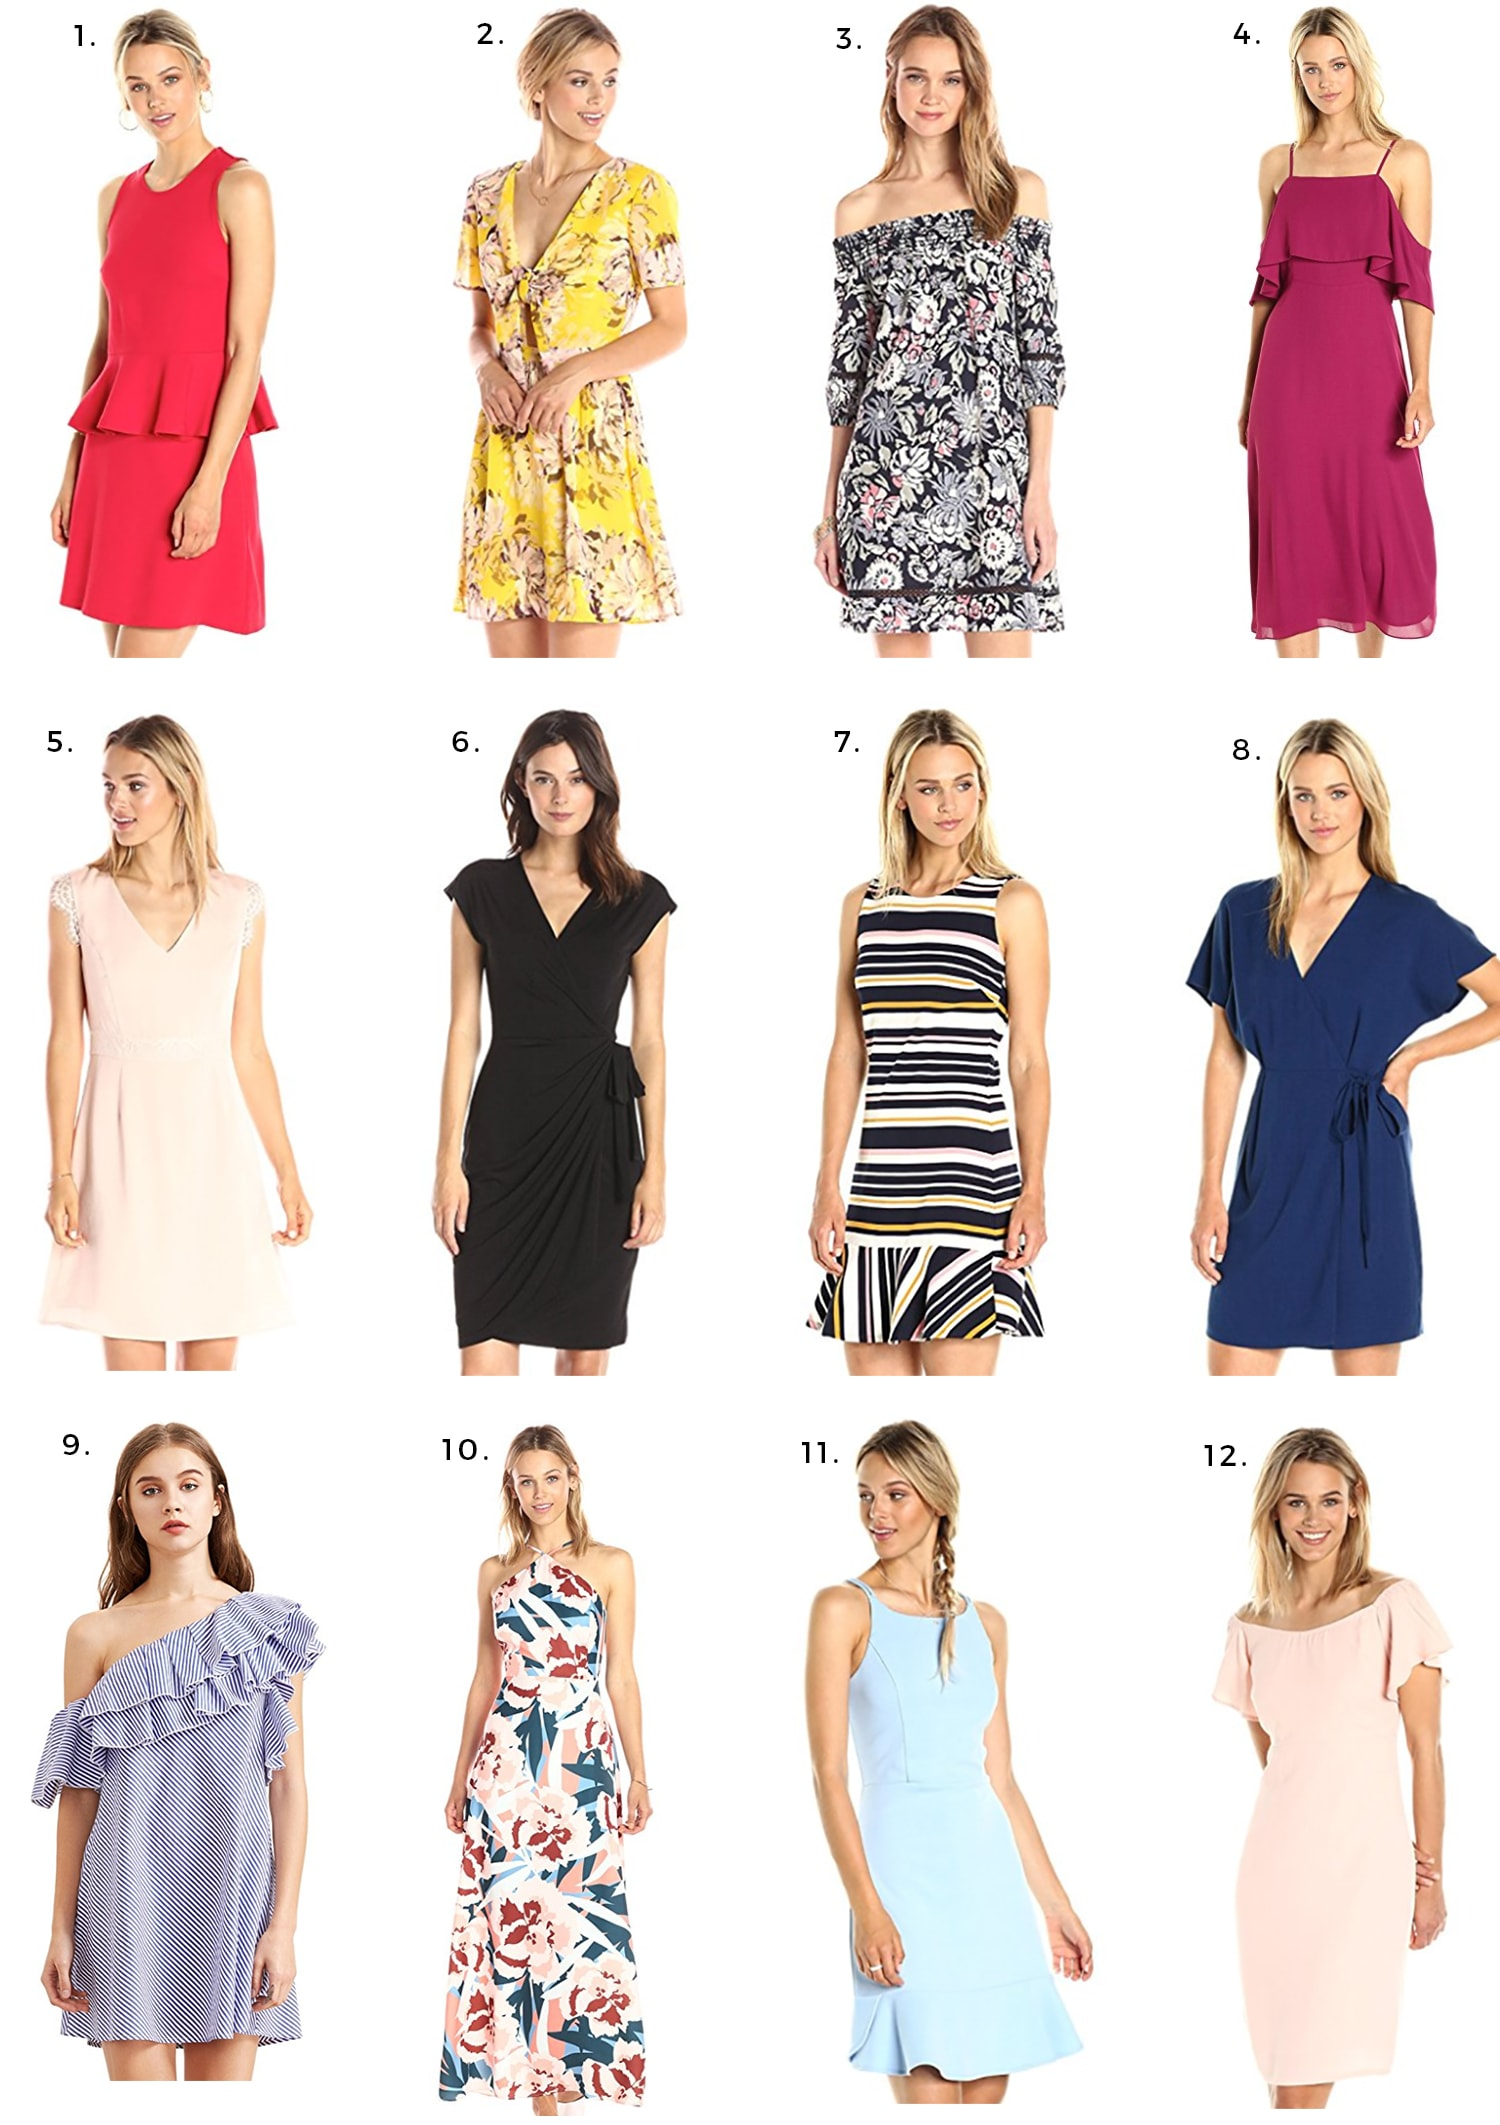 98de300281bc3 Dresses That Ship Free with Amazon Prime | Ashley Brooke Nicholas